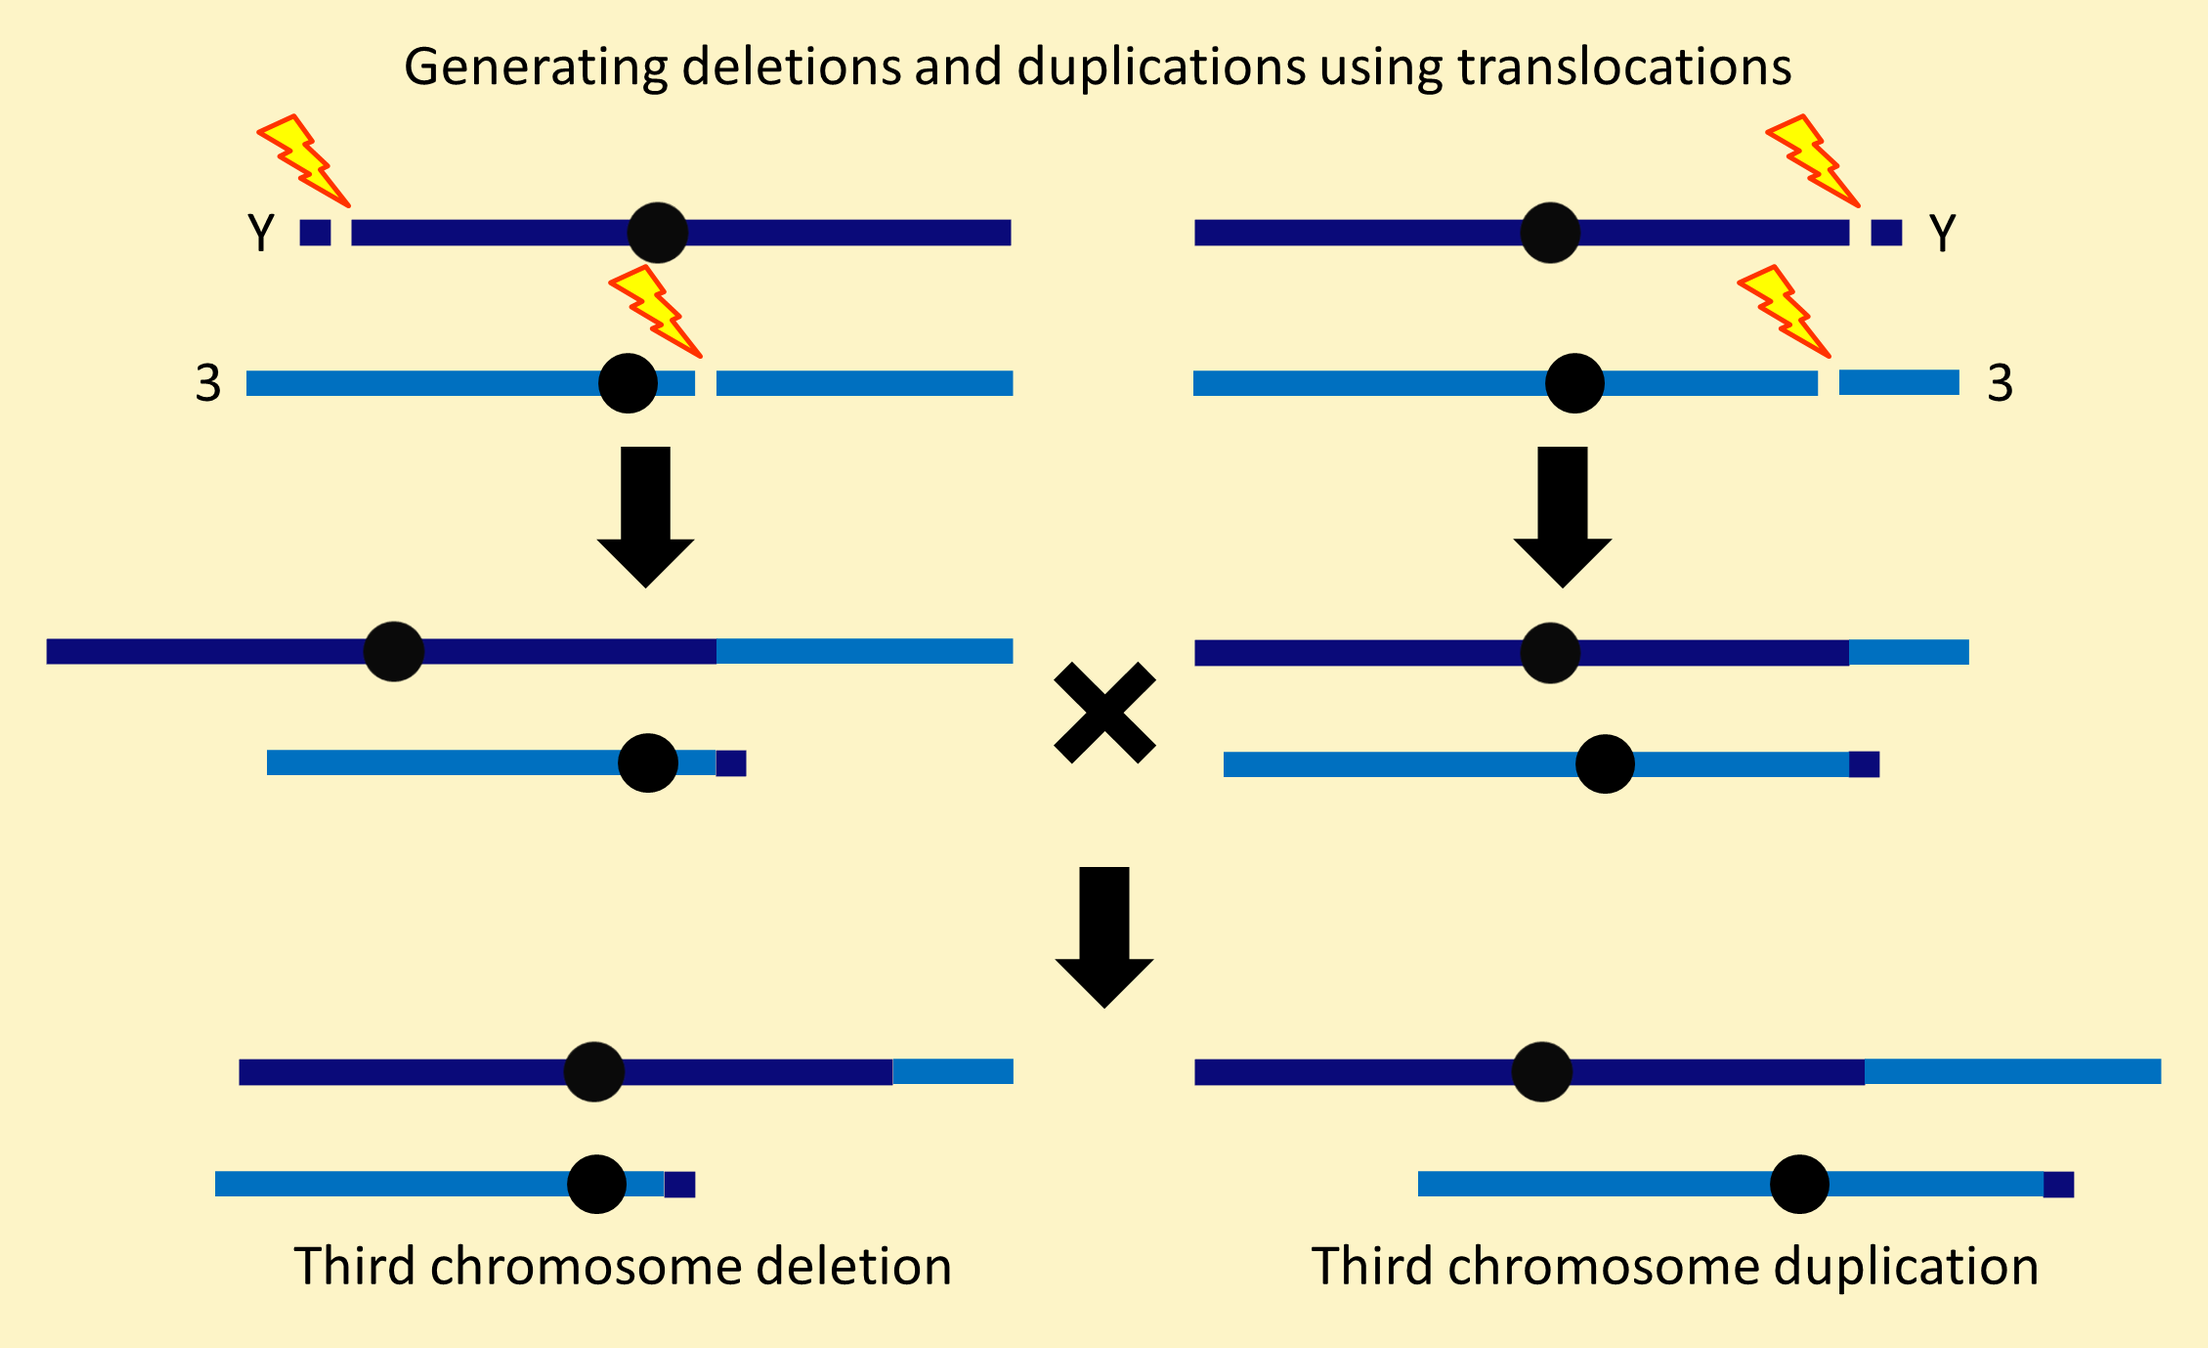 Third chromosome deletion / duplication